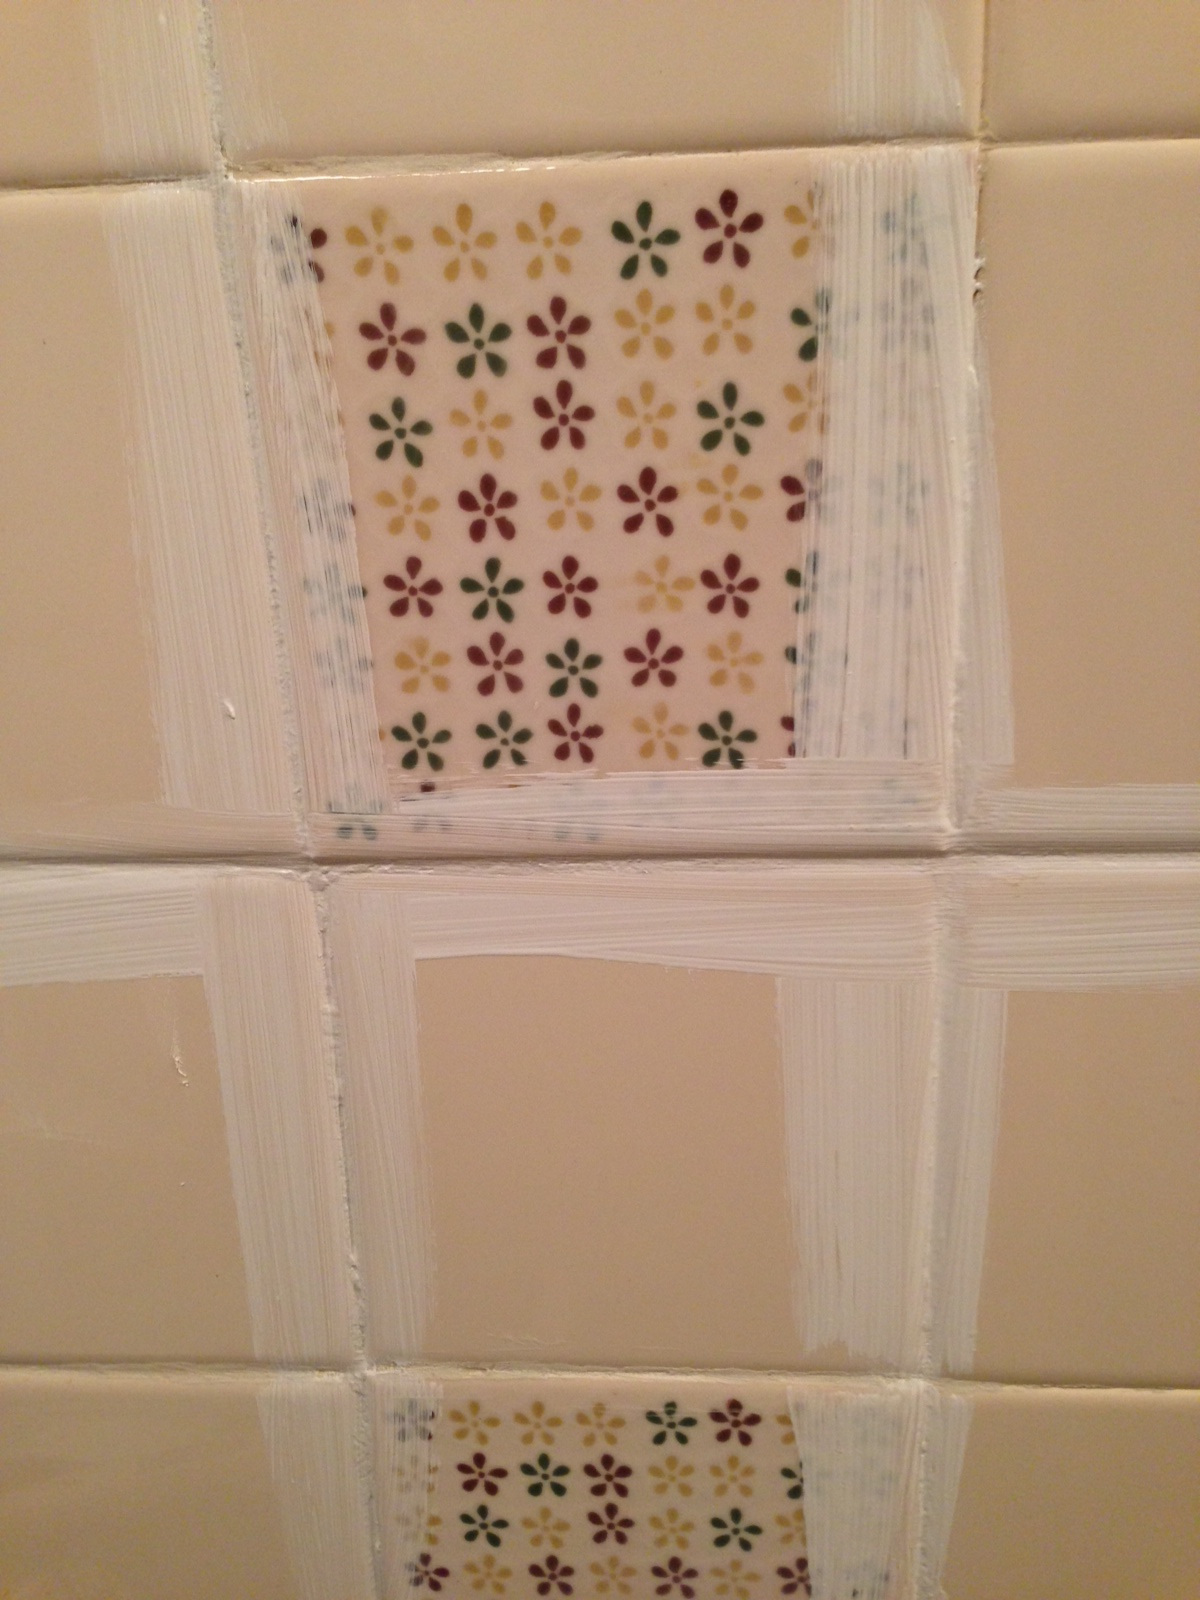 Remodelaholic a 170 bathroom makeover with painted tile how to paint tile by the learner observer on remodelaholic dailygadgetfo Images